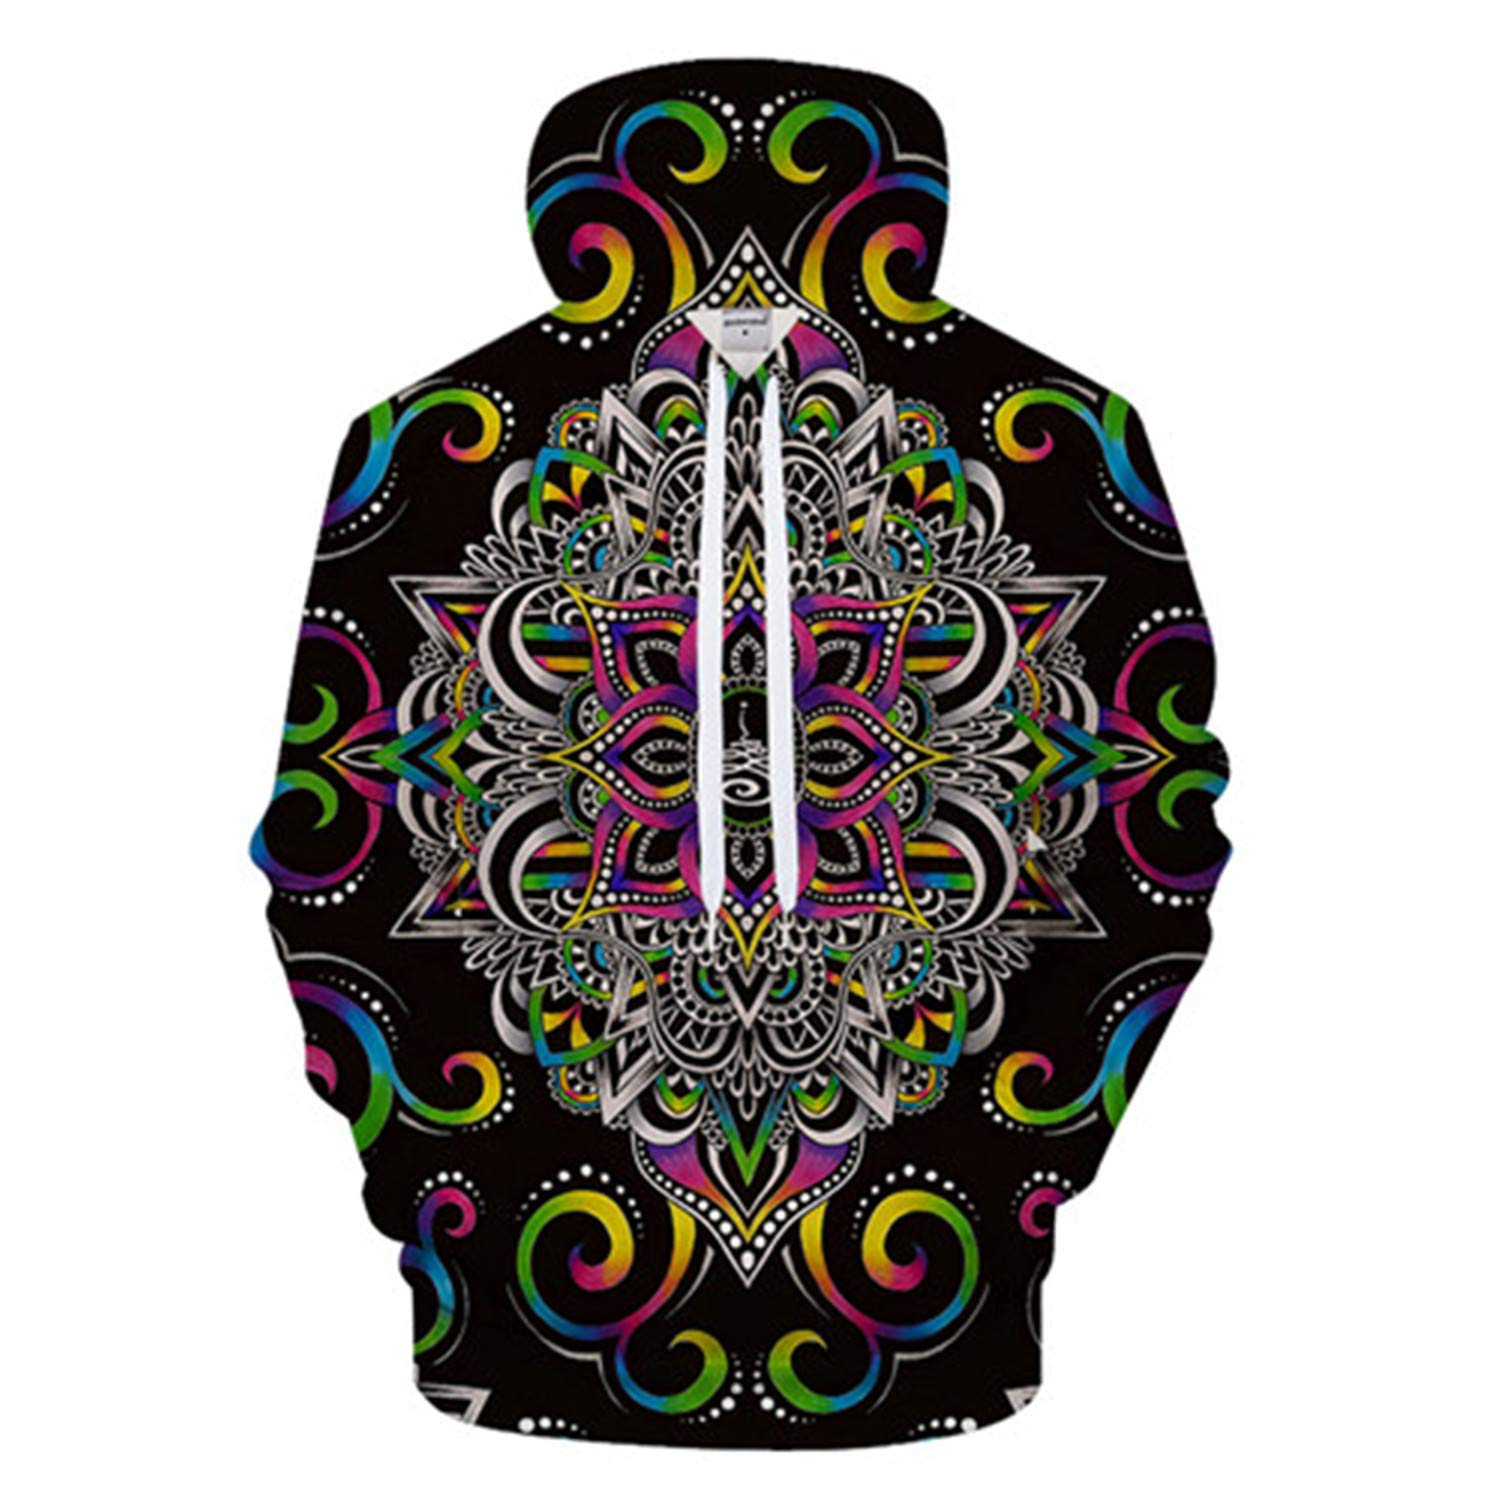 nayingying Armonía Magia Por Brizbazaar Arte Hombres Hoody 3D Hoodies Sudadera Flor Hombres Mujeres Hoodie Coat Pullover Chándal Gota Nave LMS397 XXL at ...